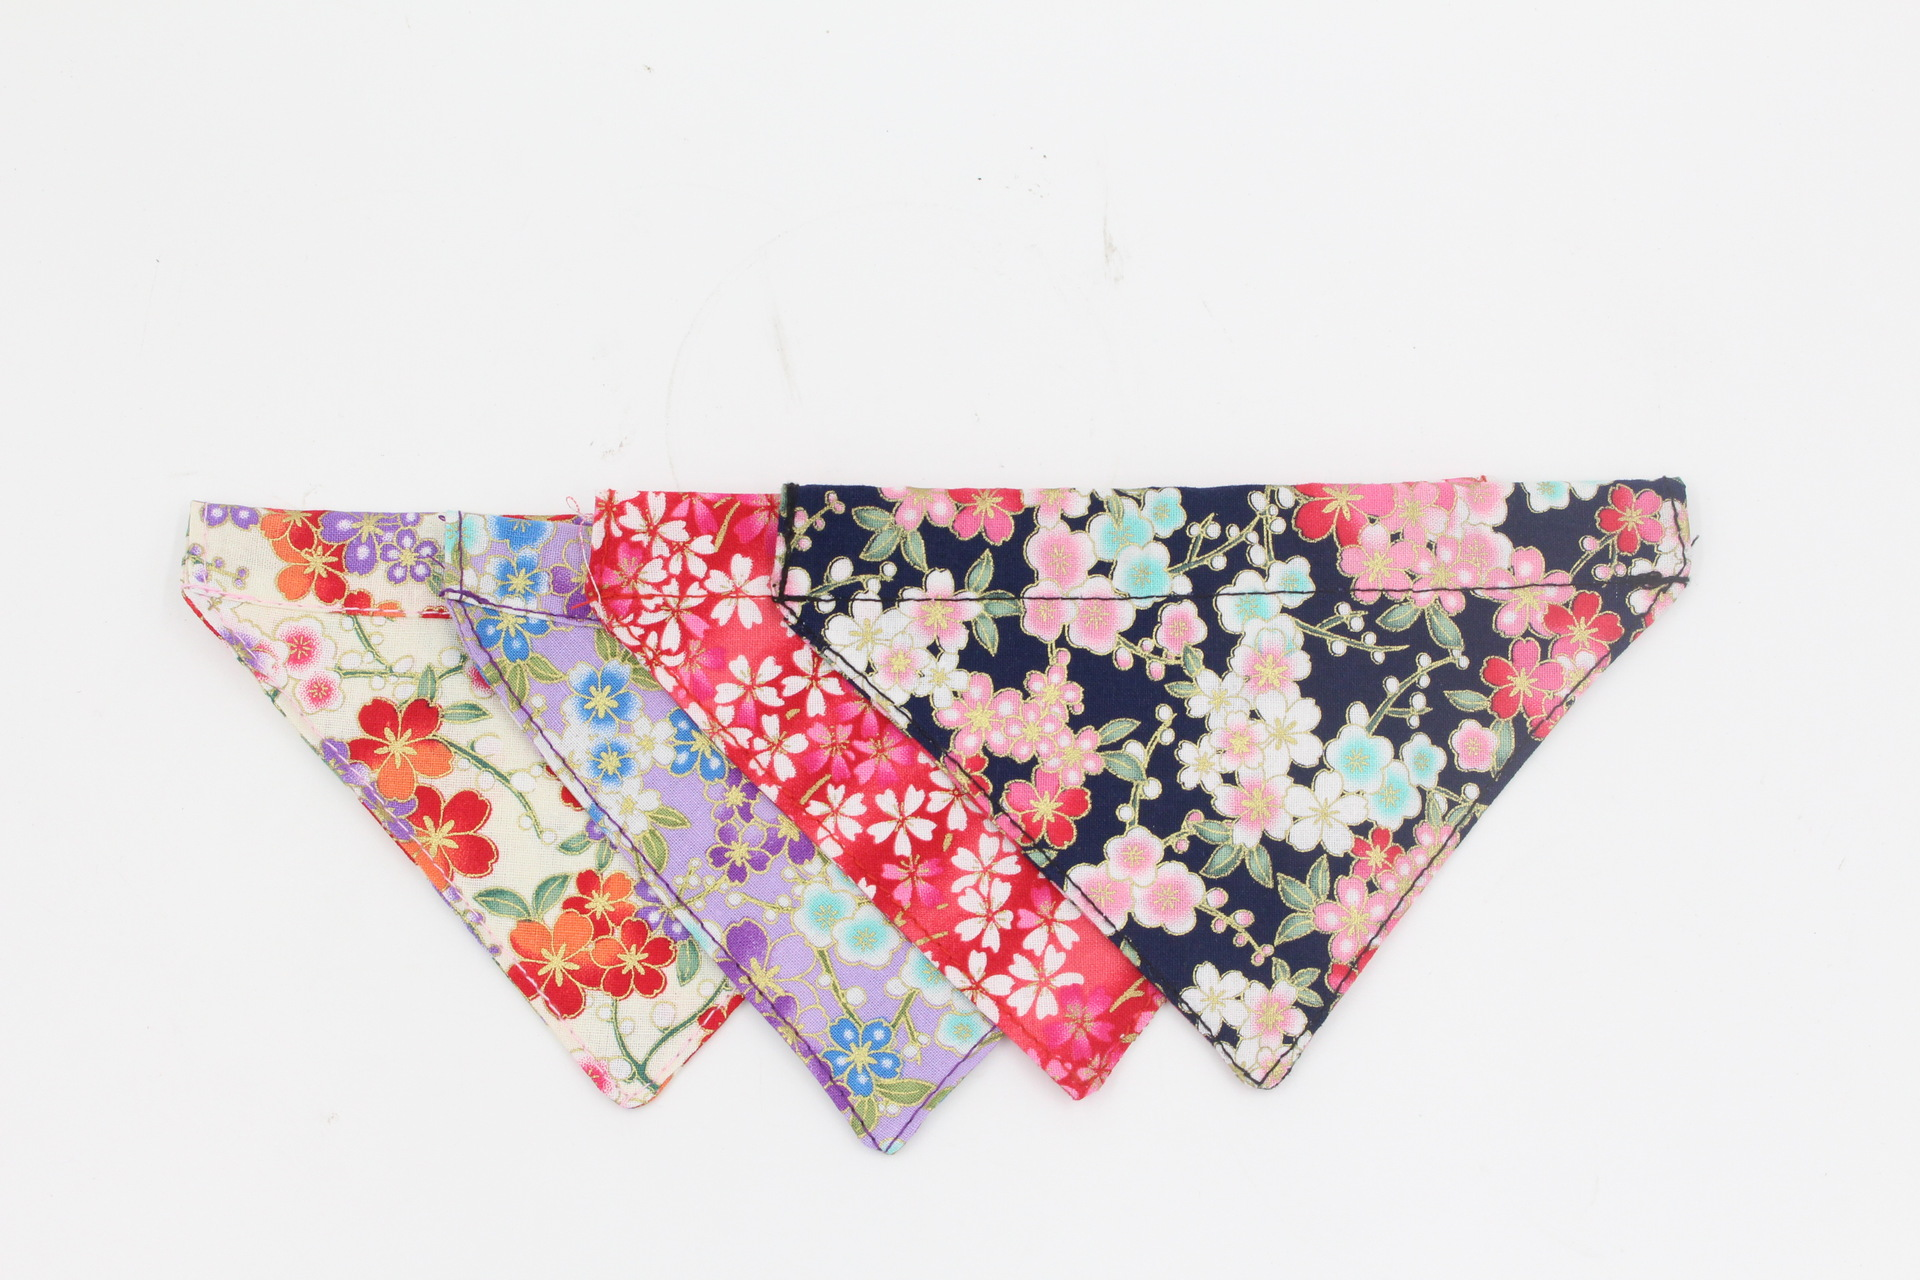 Berry Christmas Dacron Triangular Binder Pet Collar And Wind Triangular Binder Dog Bibs Pet Supplies